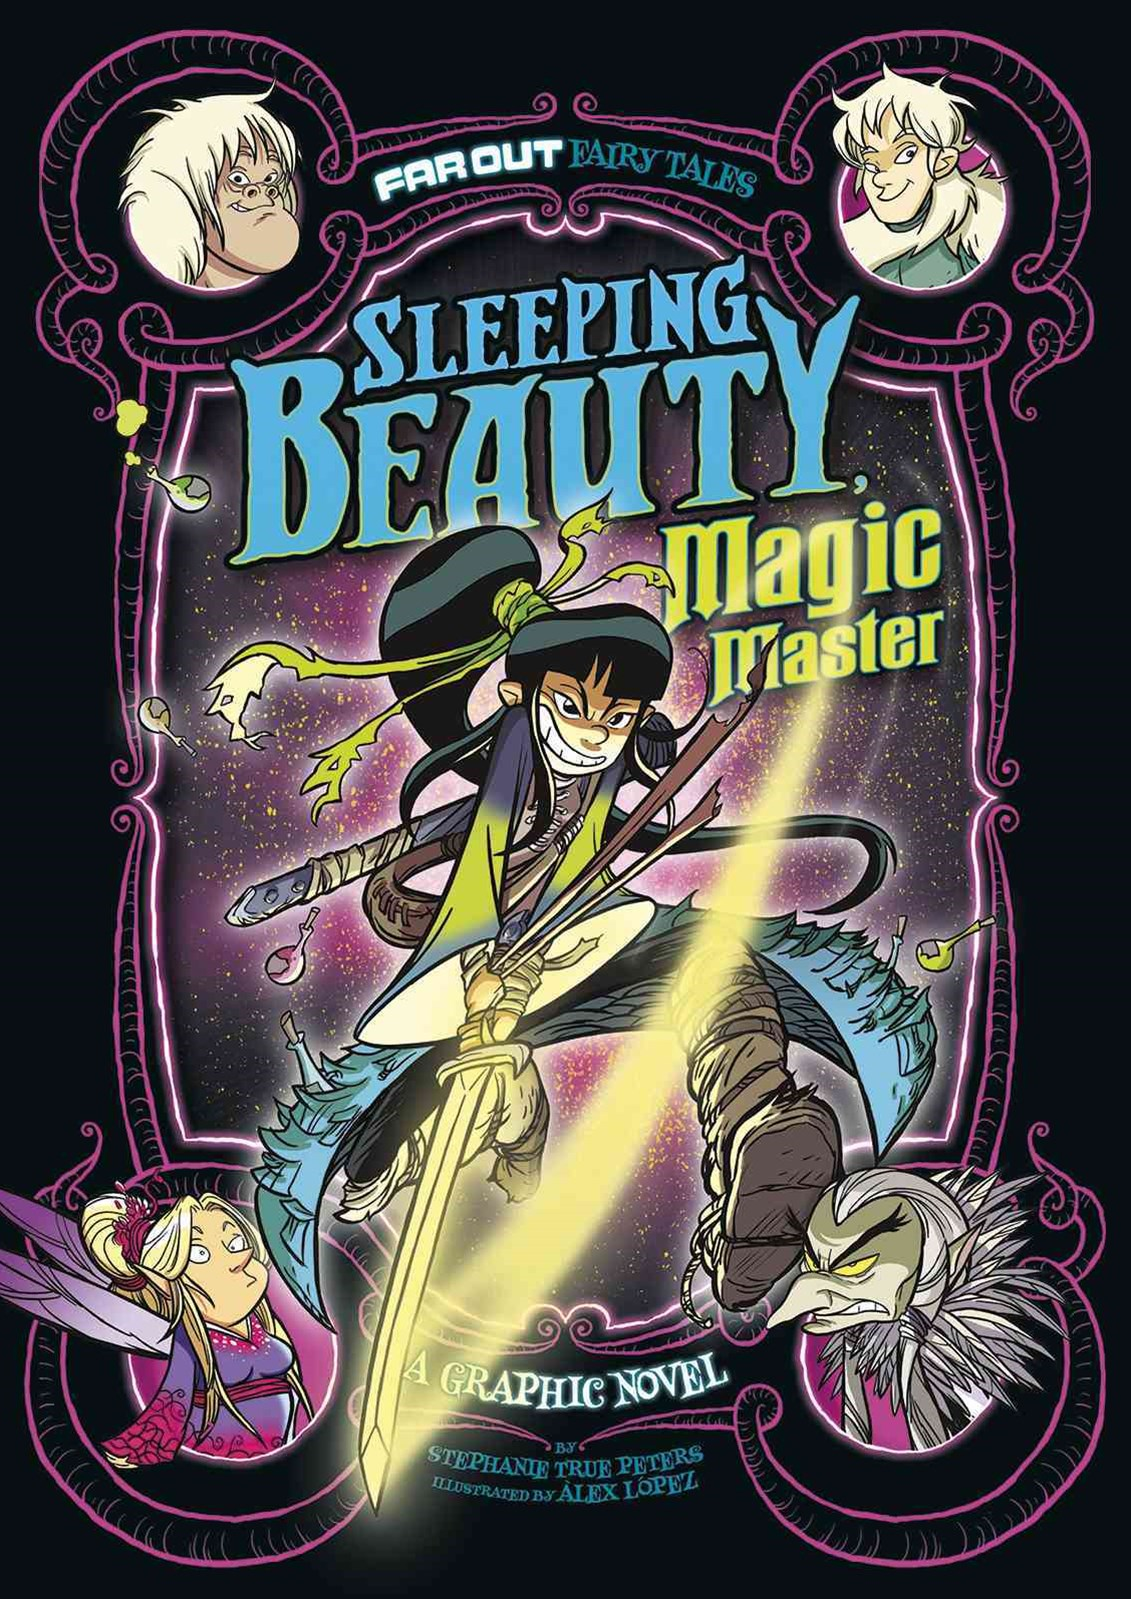 Far Out Fairy Tales: Sleeping Beauty Magic Master